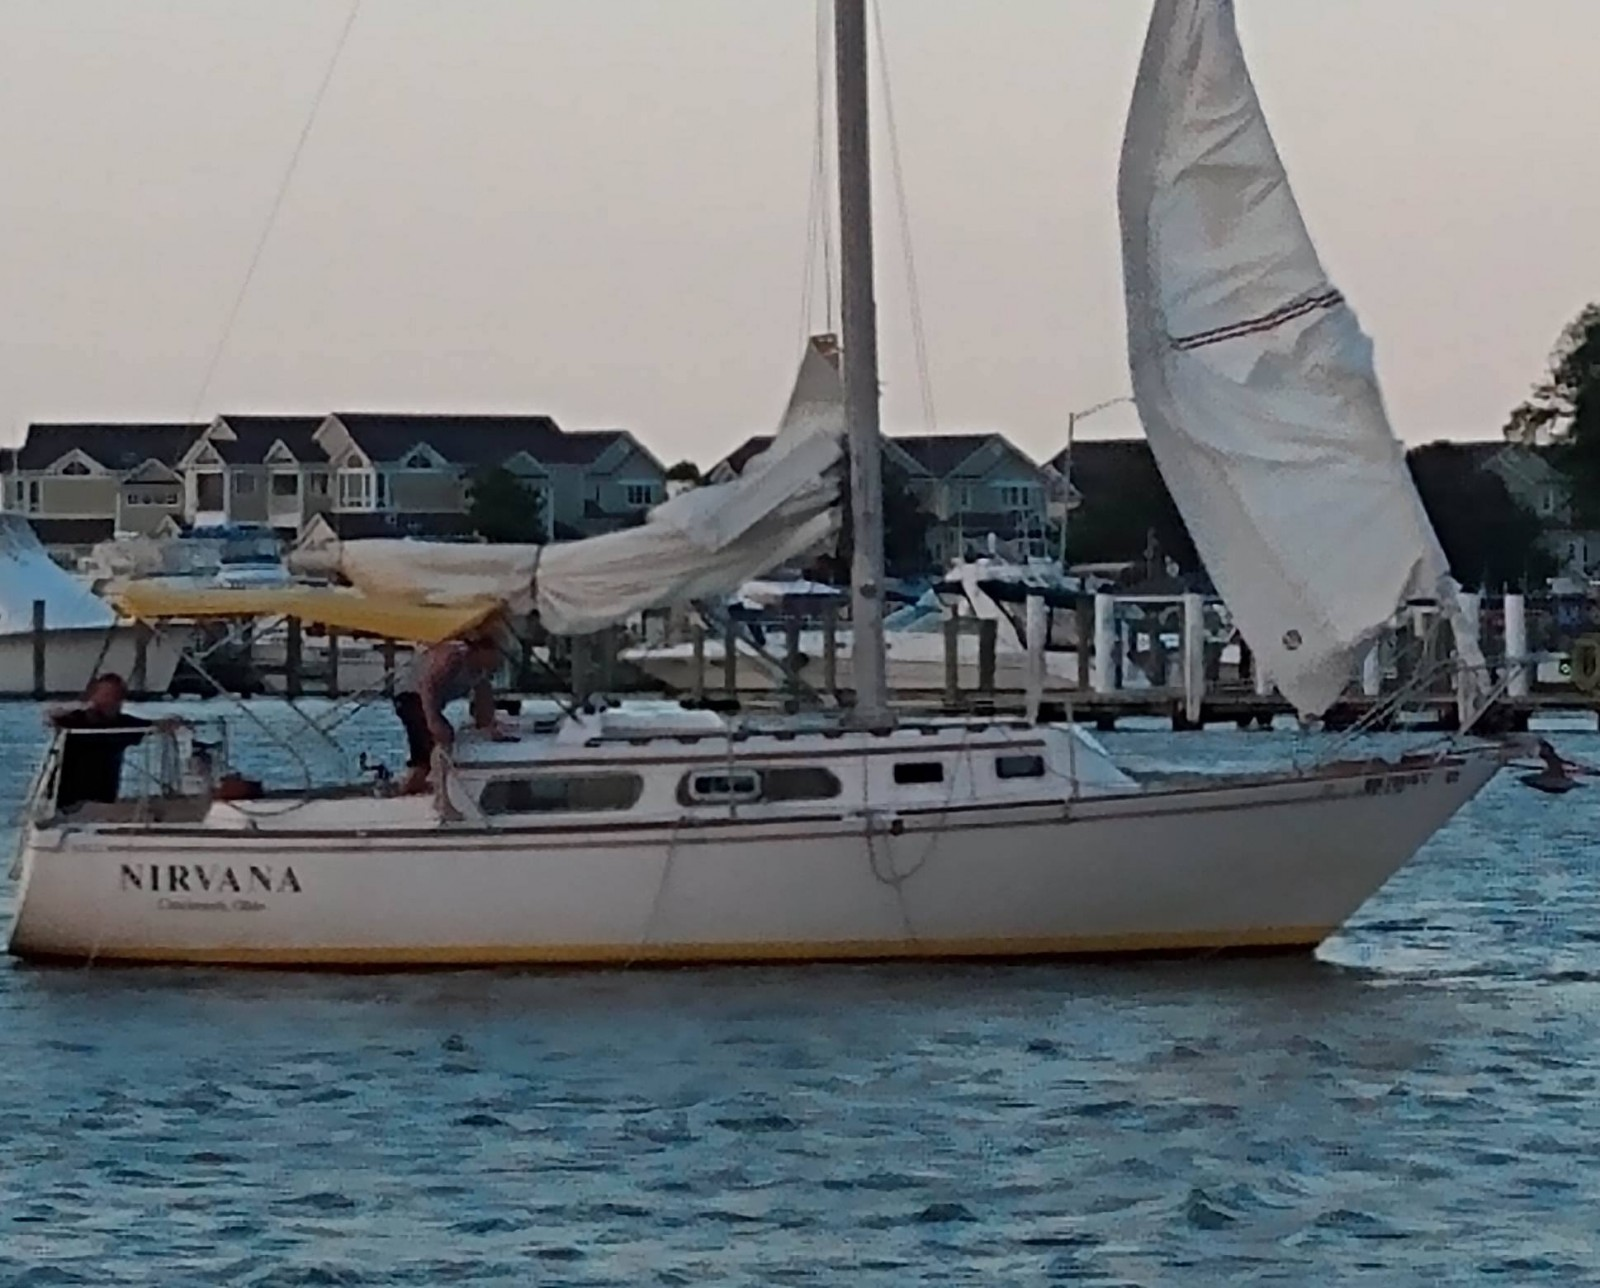 Female Sailor Needed for the Summer